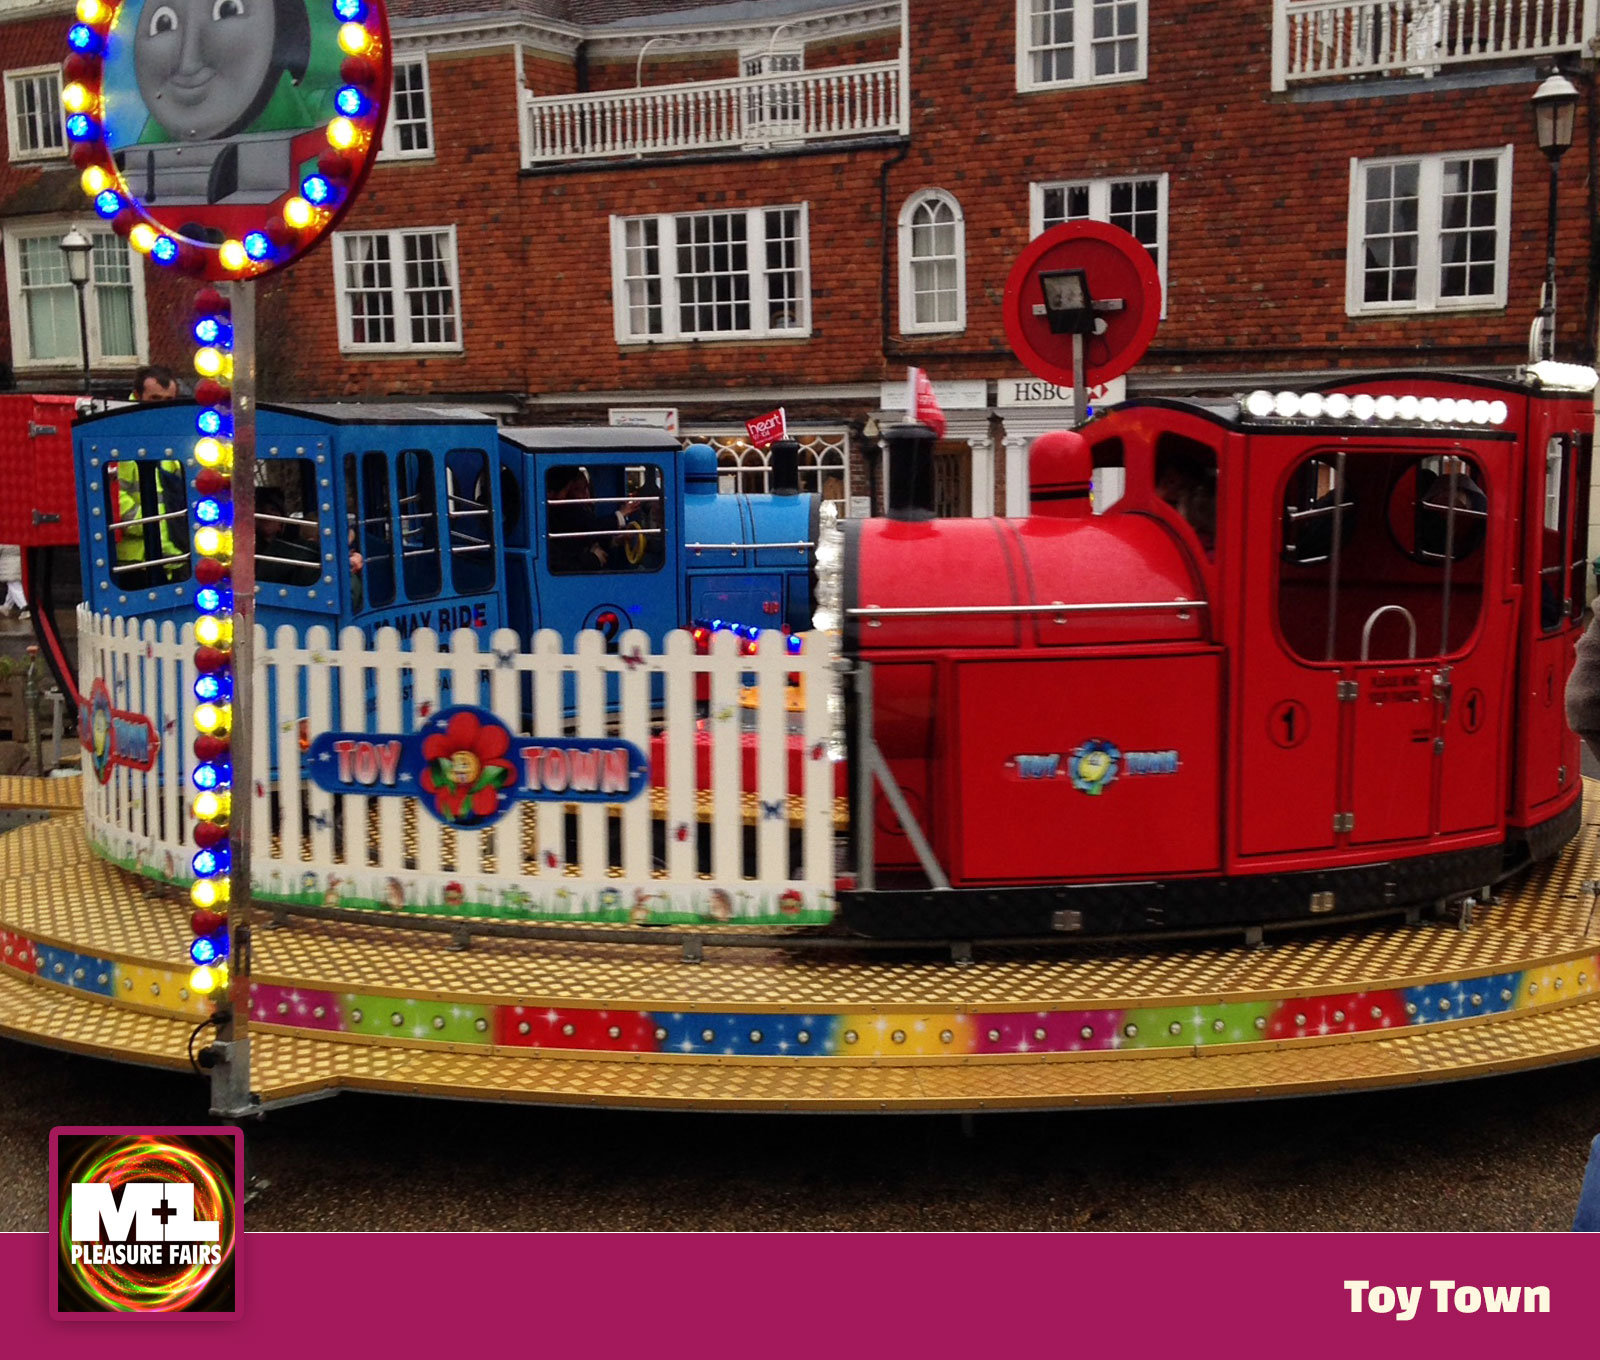 Toy Town Ride Image